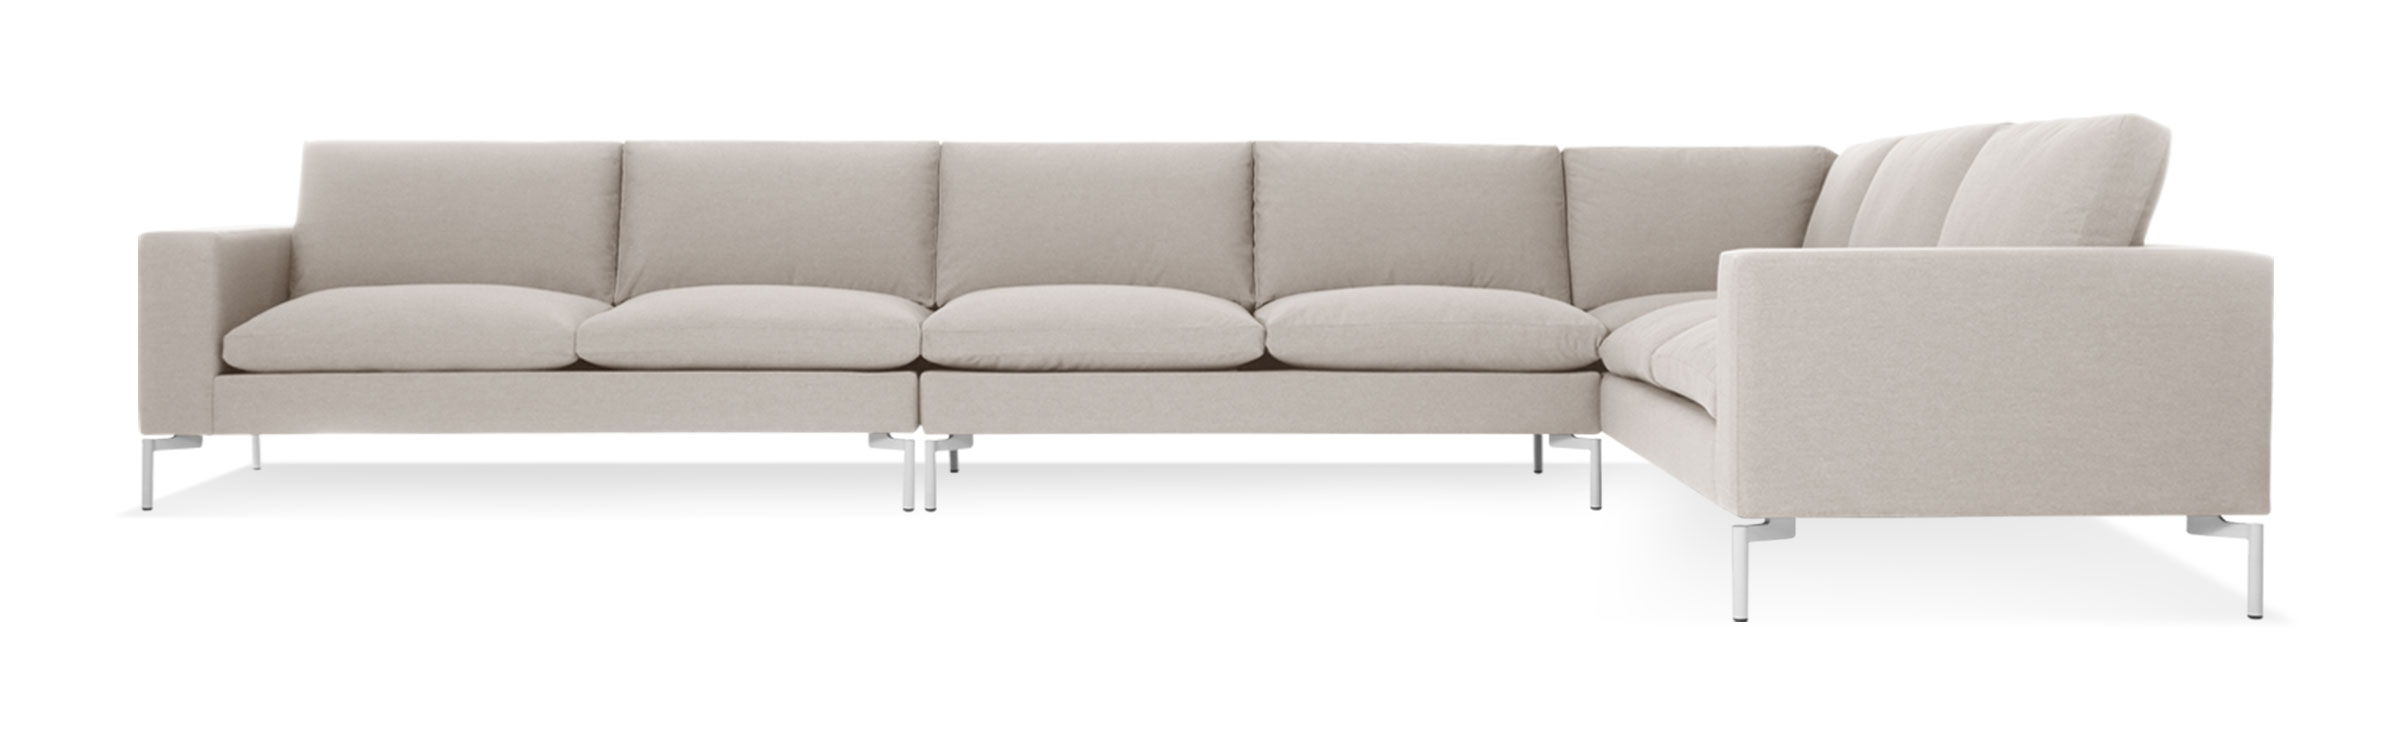 Furniture : X Large Sectional Sofa Recliner Design Corner Couch Throughout Latest 110x90 Sectional Sofas (View 20 of 20)